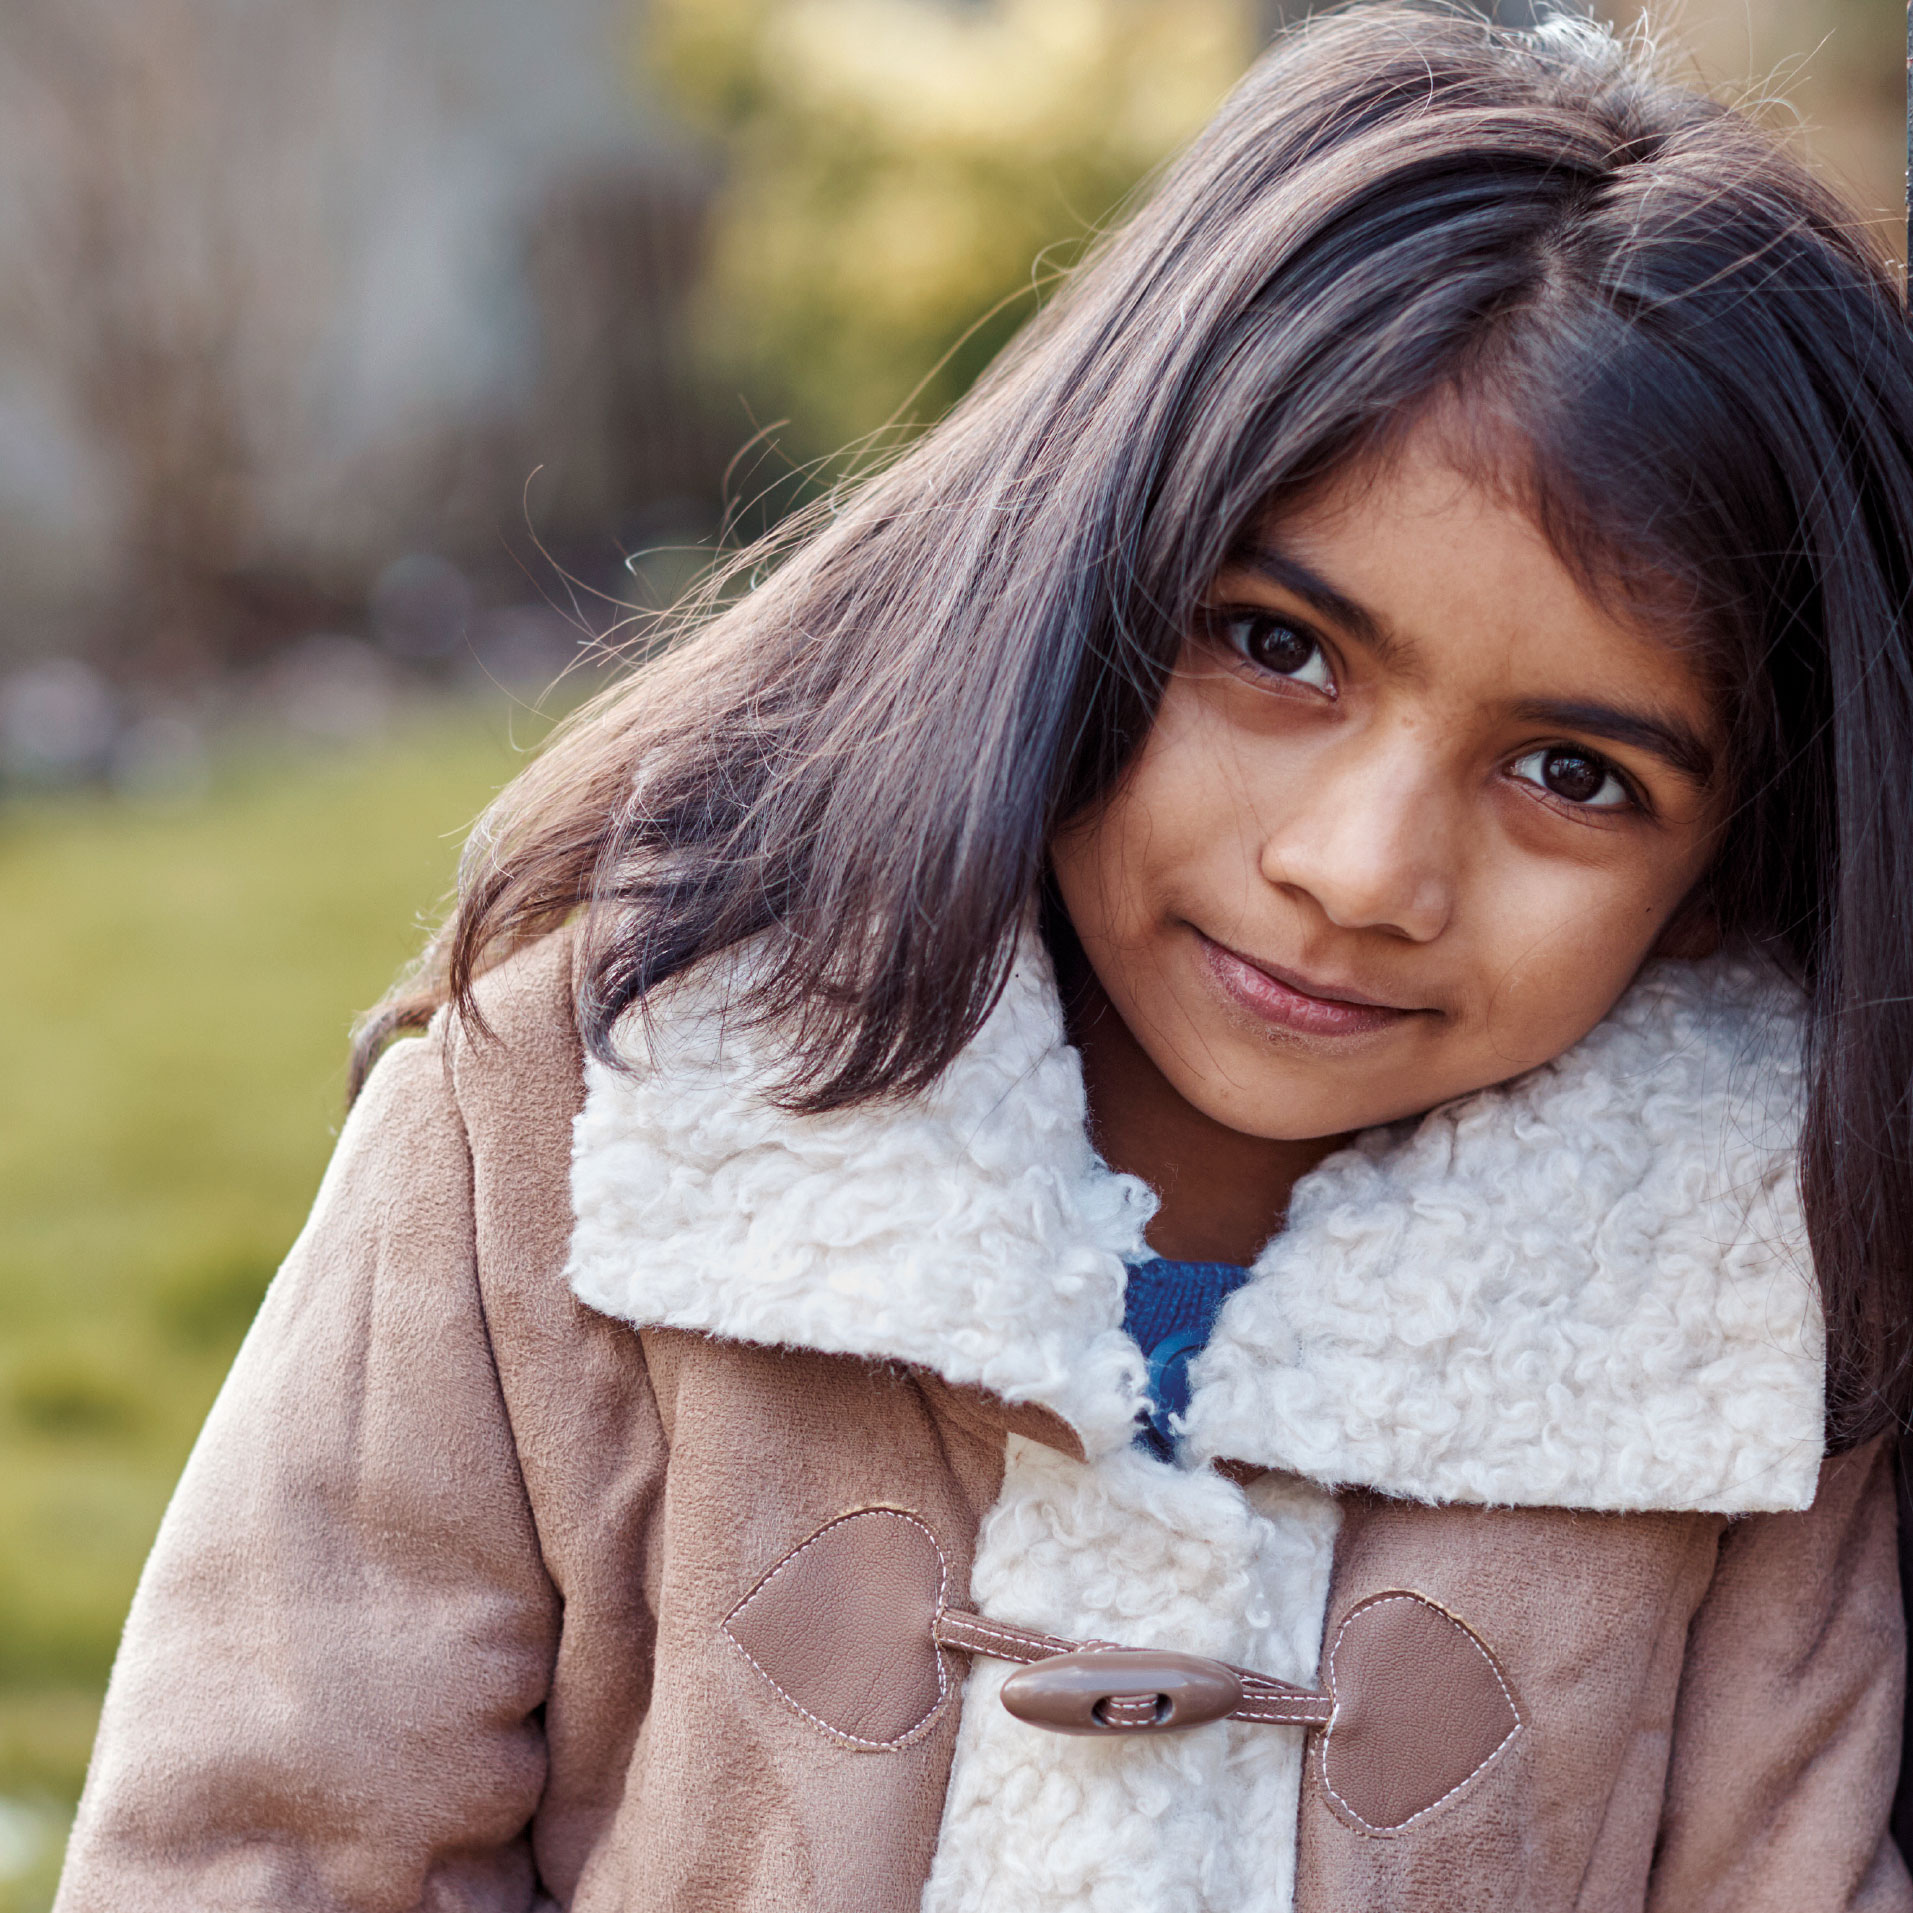 Image of little girl from the pack. Looking directly at camera.